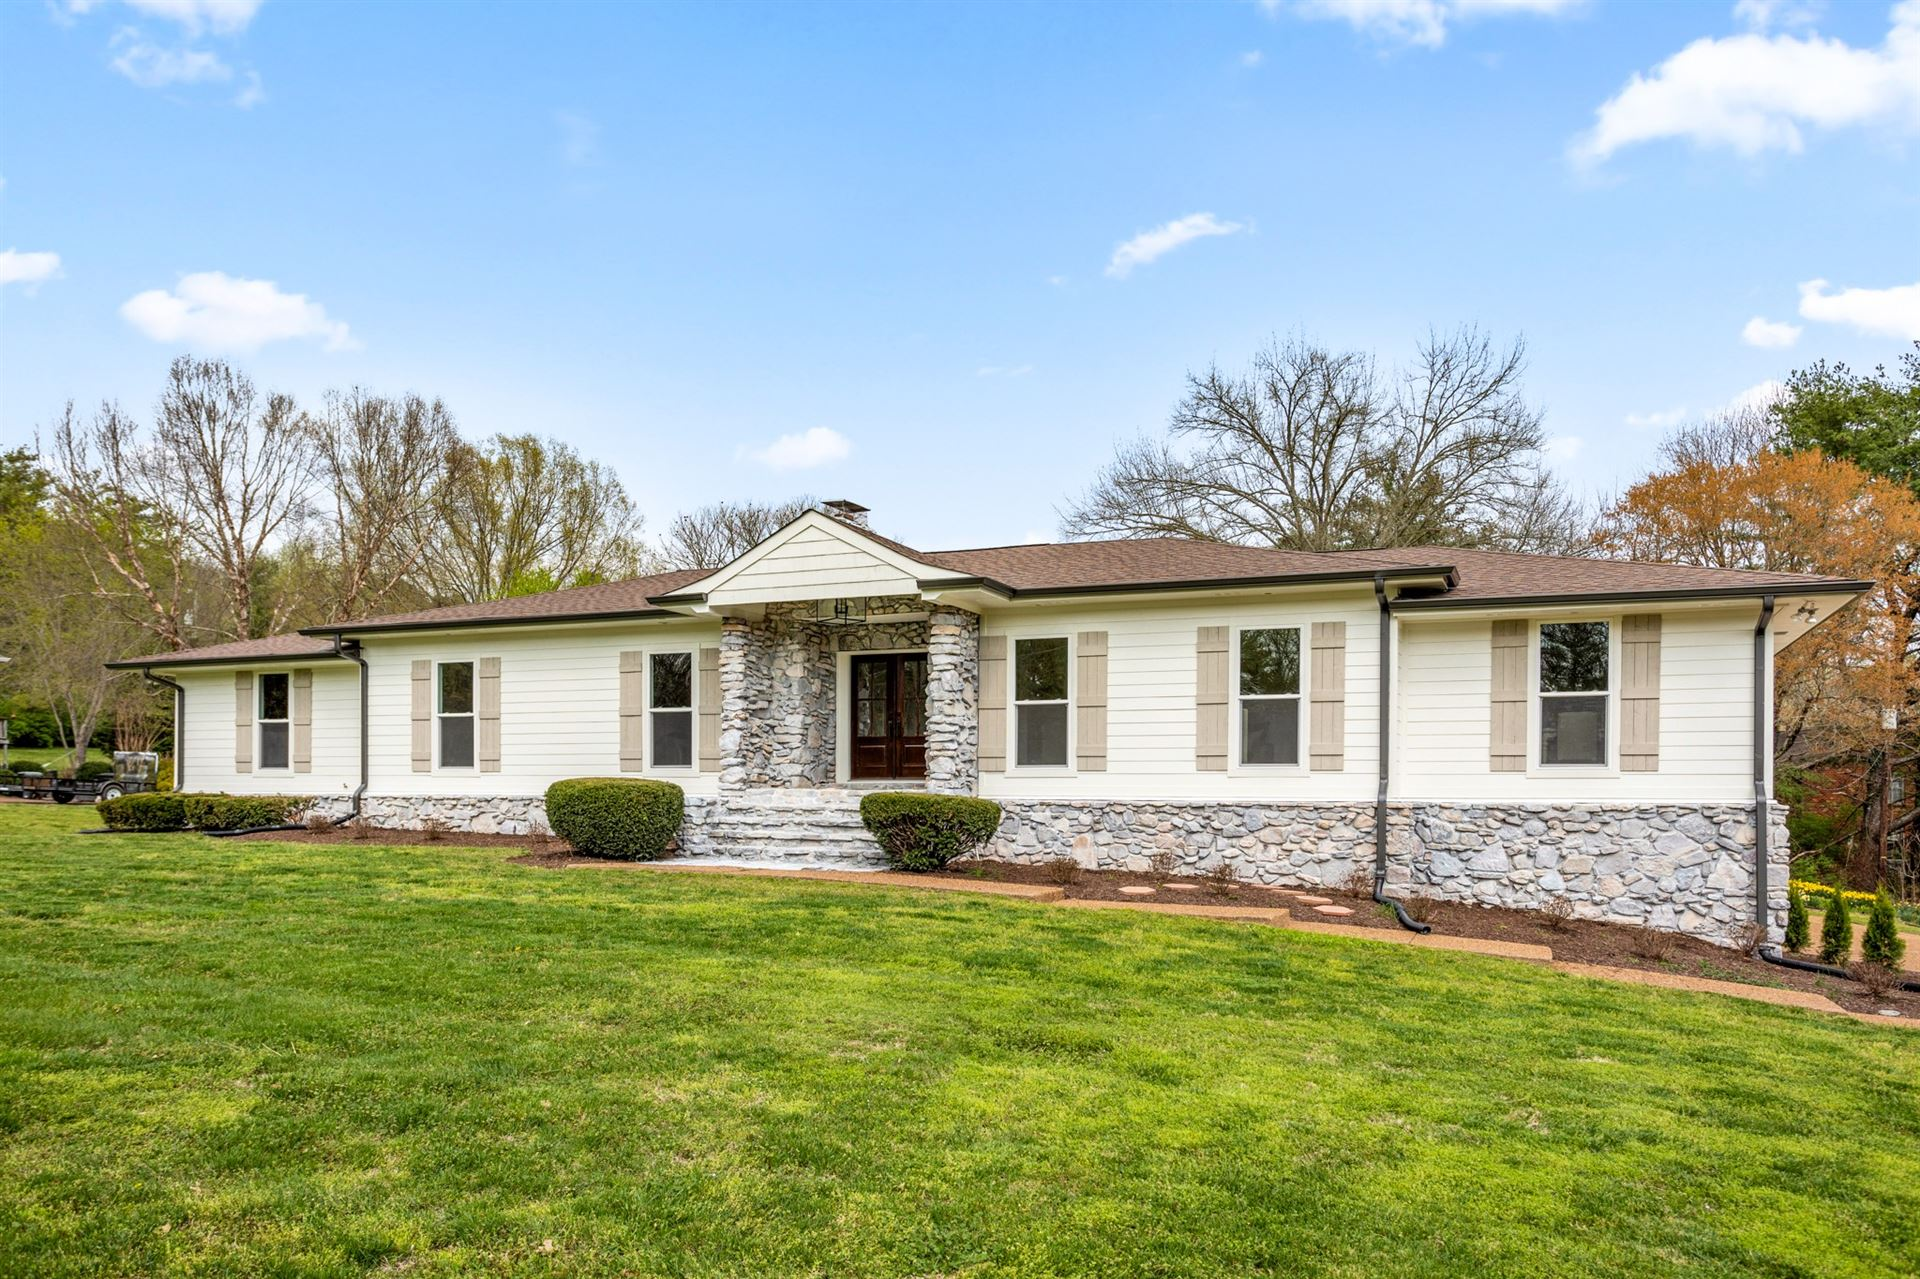 Photo of 6224 Bridlewood Ln, Brentwood, TN 37027 (MLS # 2136183)